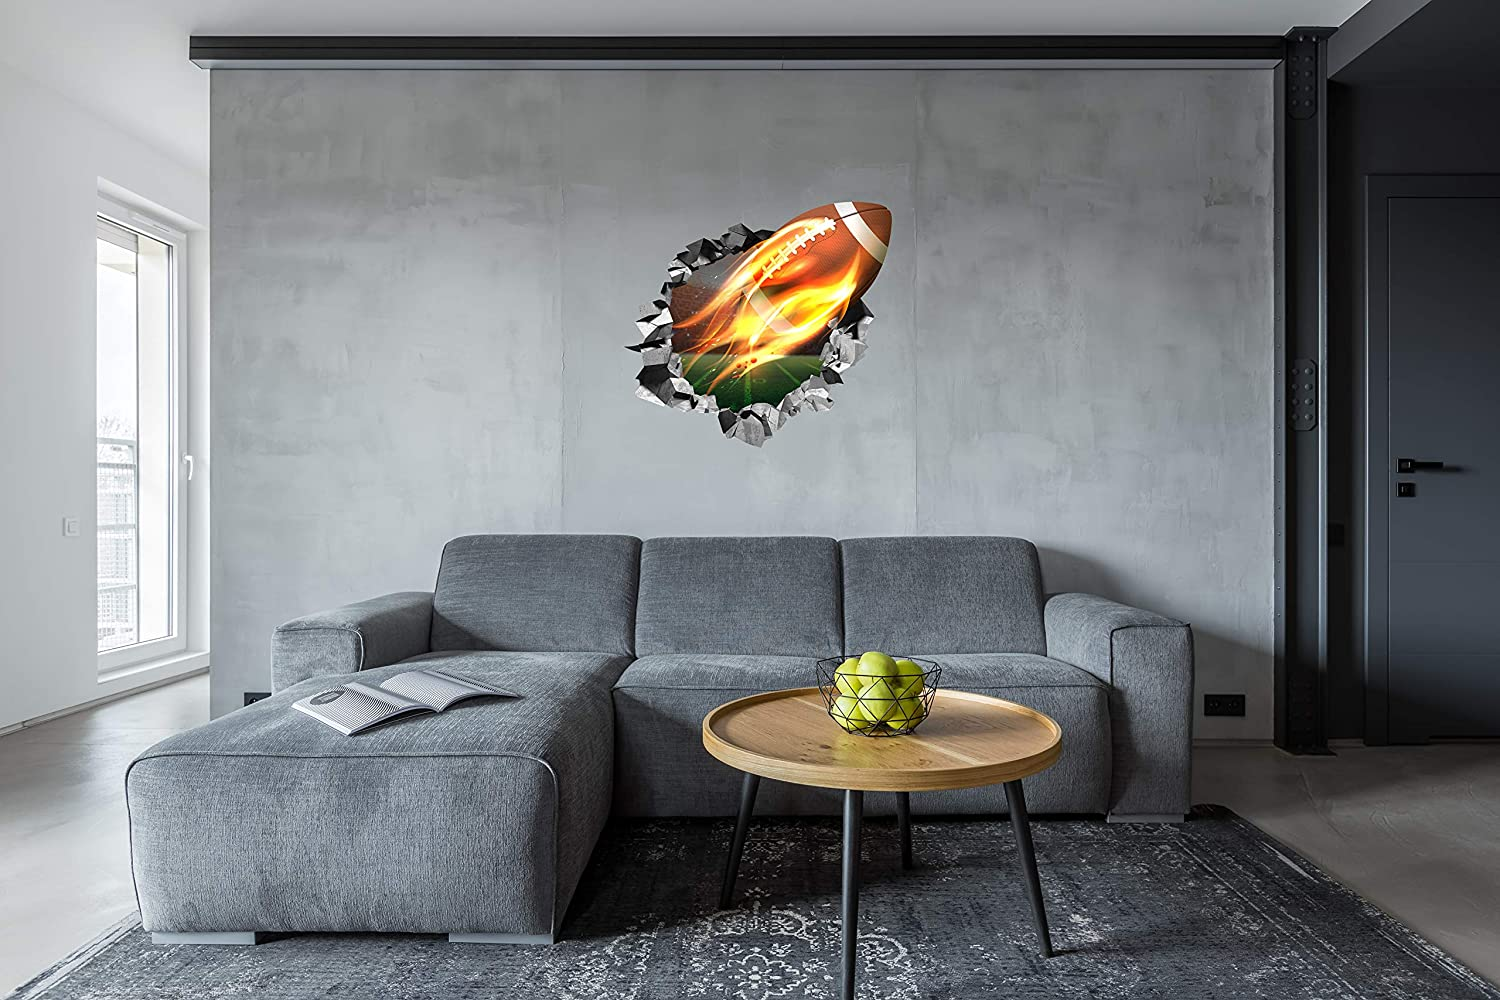 Decor for Boys and Kids Bedroom Mural Art 24x24 Break Through Image Flying Fire Basketball Self Adhesive and Removable Vinyl Sticker Study Room Customized For You Large 3D Wall Decal